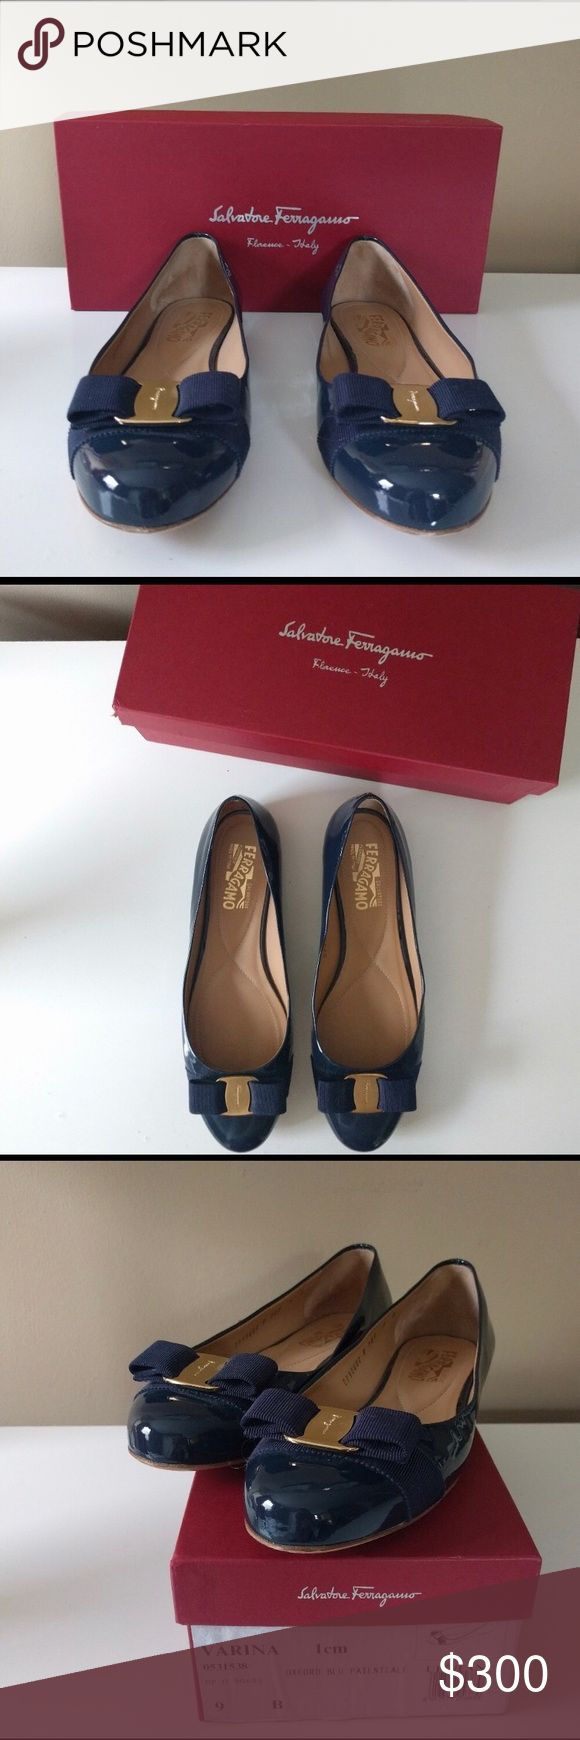 Ferragamo navy patent flats -Size 9 -lightly used Chic and sophisticated Varina patent flats - lightly worn in original box. Lovely navy color, perfect for work or fun. Only selling because they are a little too small for me. Ferragamo Shoes Flats & Loafers